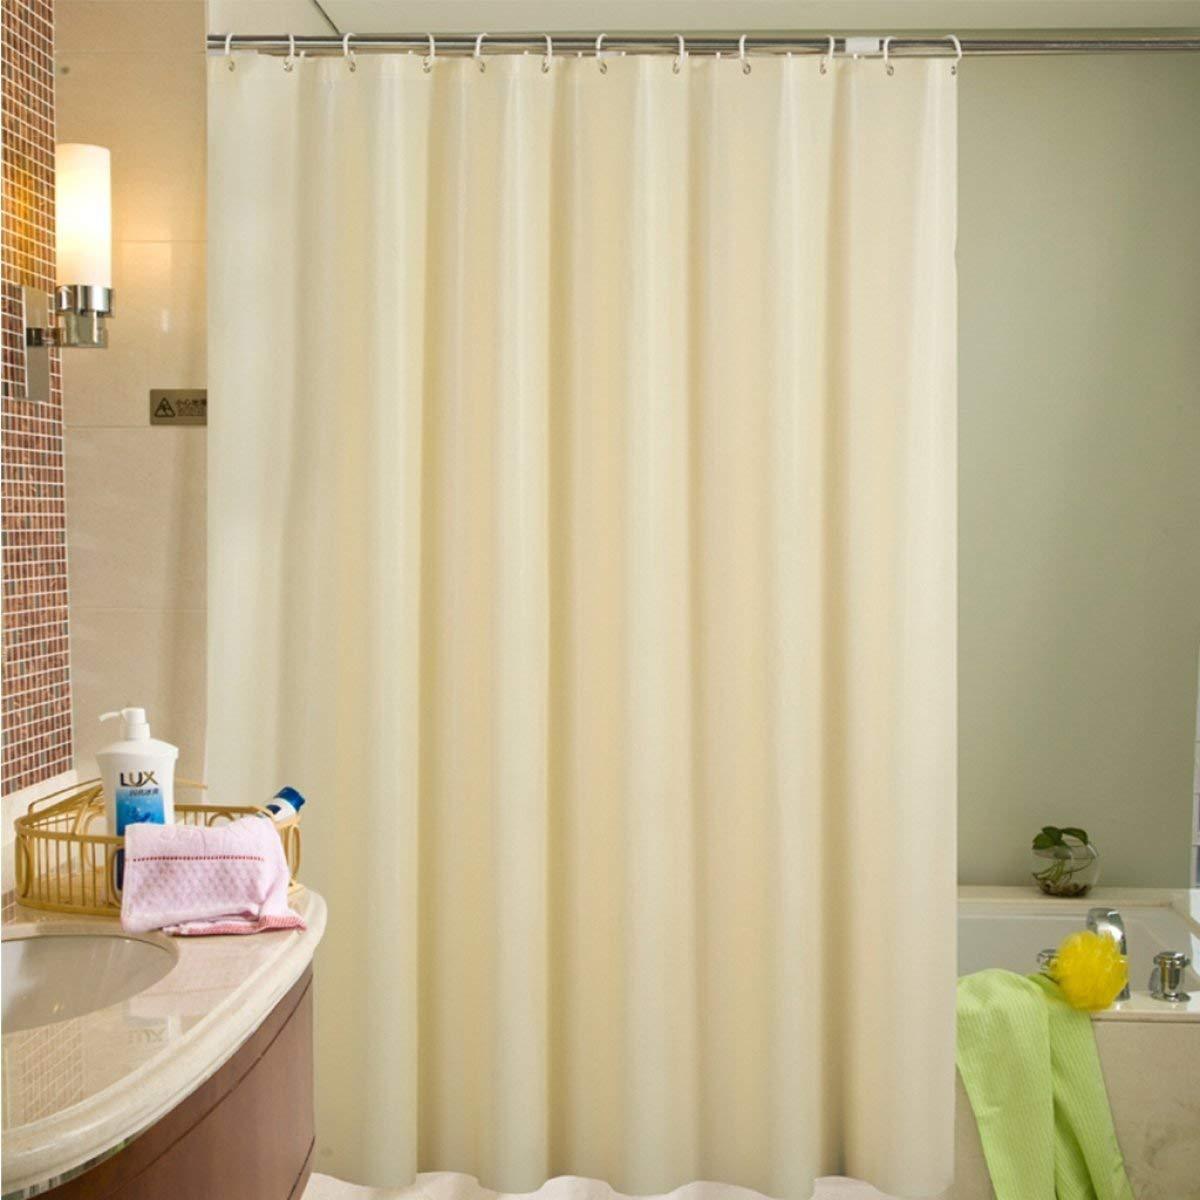 Der Solid Color Fog Translucent Blinds Thickened EVA Bathroom Free Punching Shower Curtain Waterproof and Moldy Bathroom Accessories (Color : A, Size : 200cm180cm)